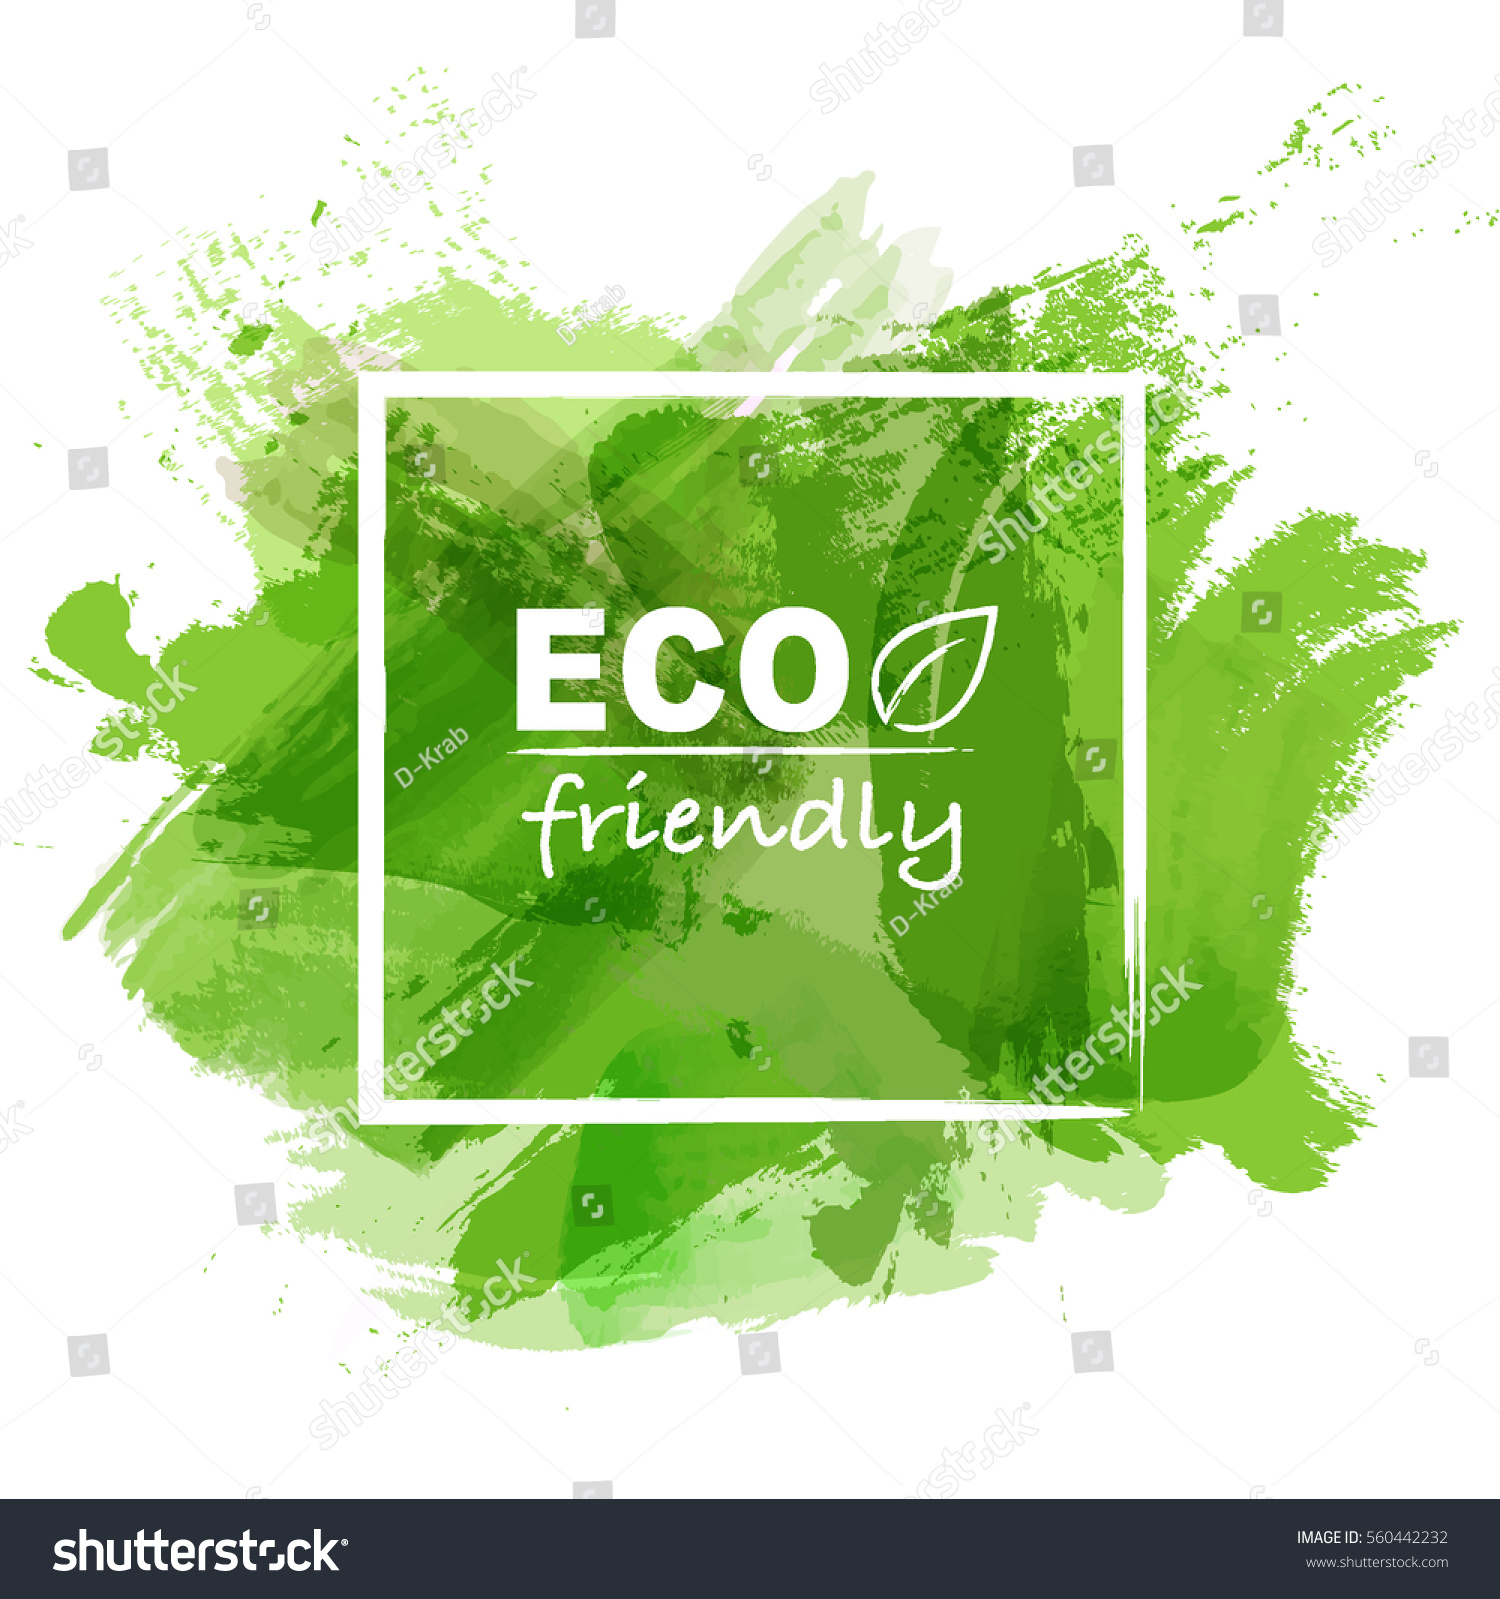 eco friendly concept green watercolor paint stock vector. Black Bedroom Furniture Sets. Home Design Ideas